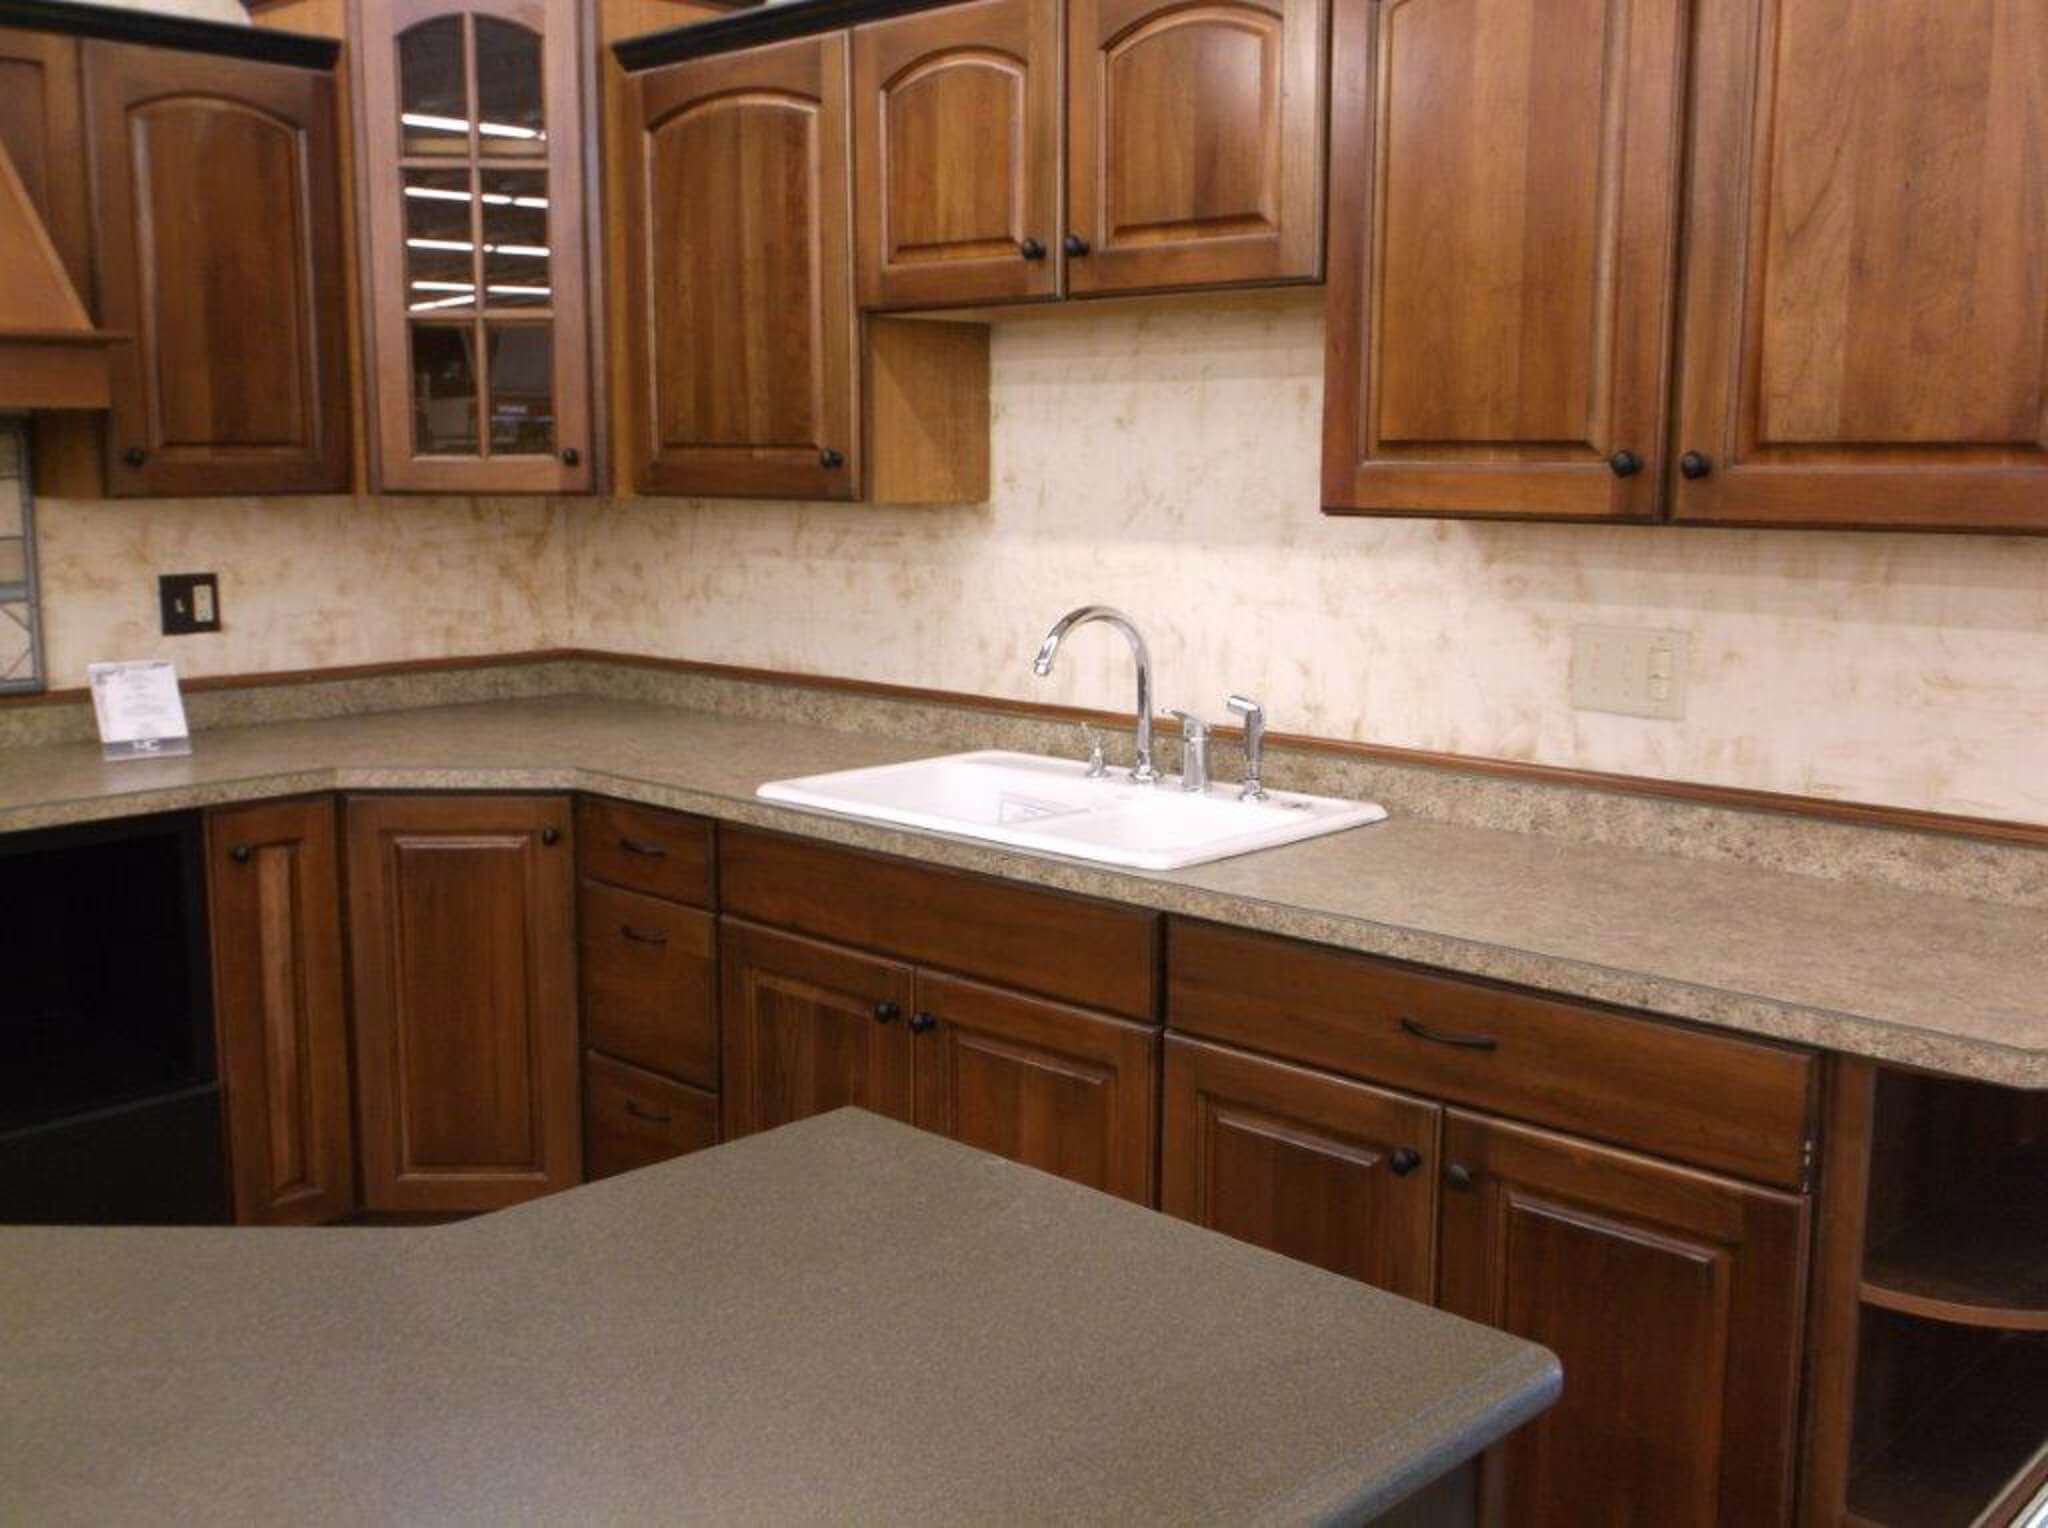 buy kitchen inside for where countertop formica to laminate sheets countertops black